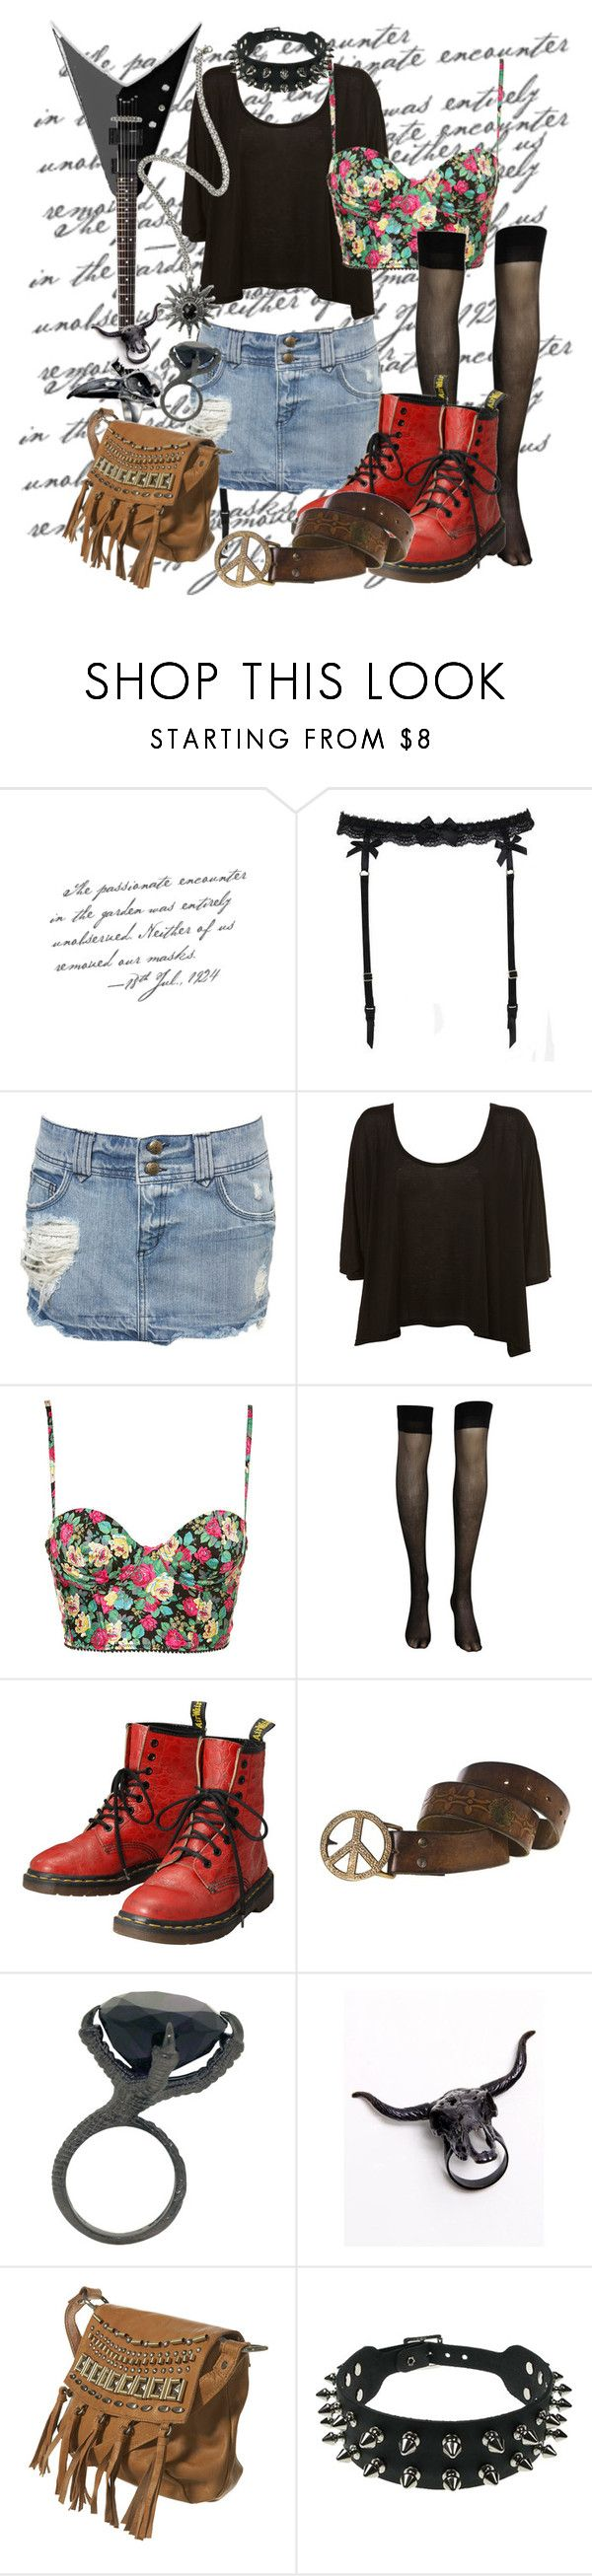 """""""black guitar"""" by mademoisellevampire ❤ liked on Polyvore featuring Reger by Janet Reger, Miss Selfridge, CO, Dr. Martens, Ugo Cacciatori, Alkemie, by Matina Amanita, LAS Jewelry and Topshop"""